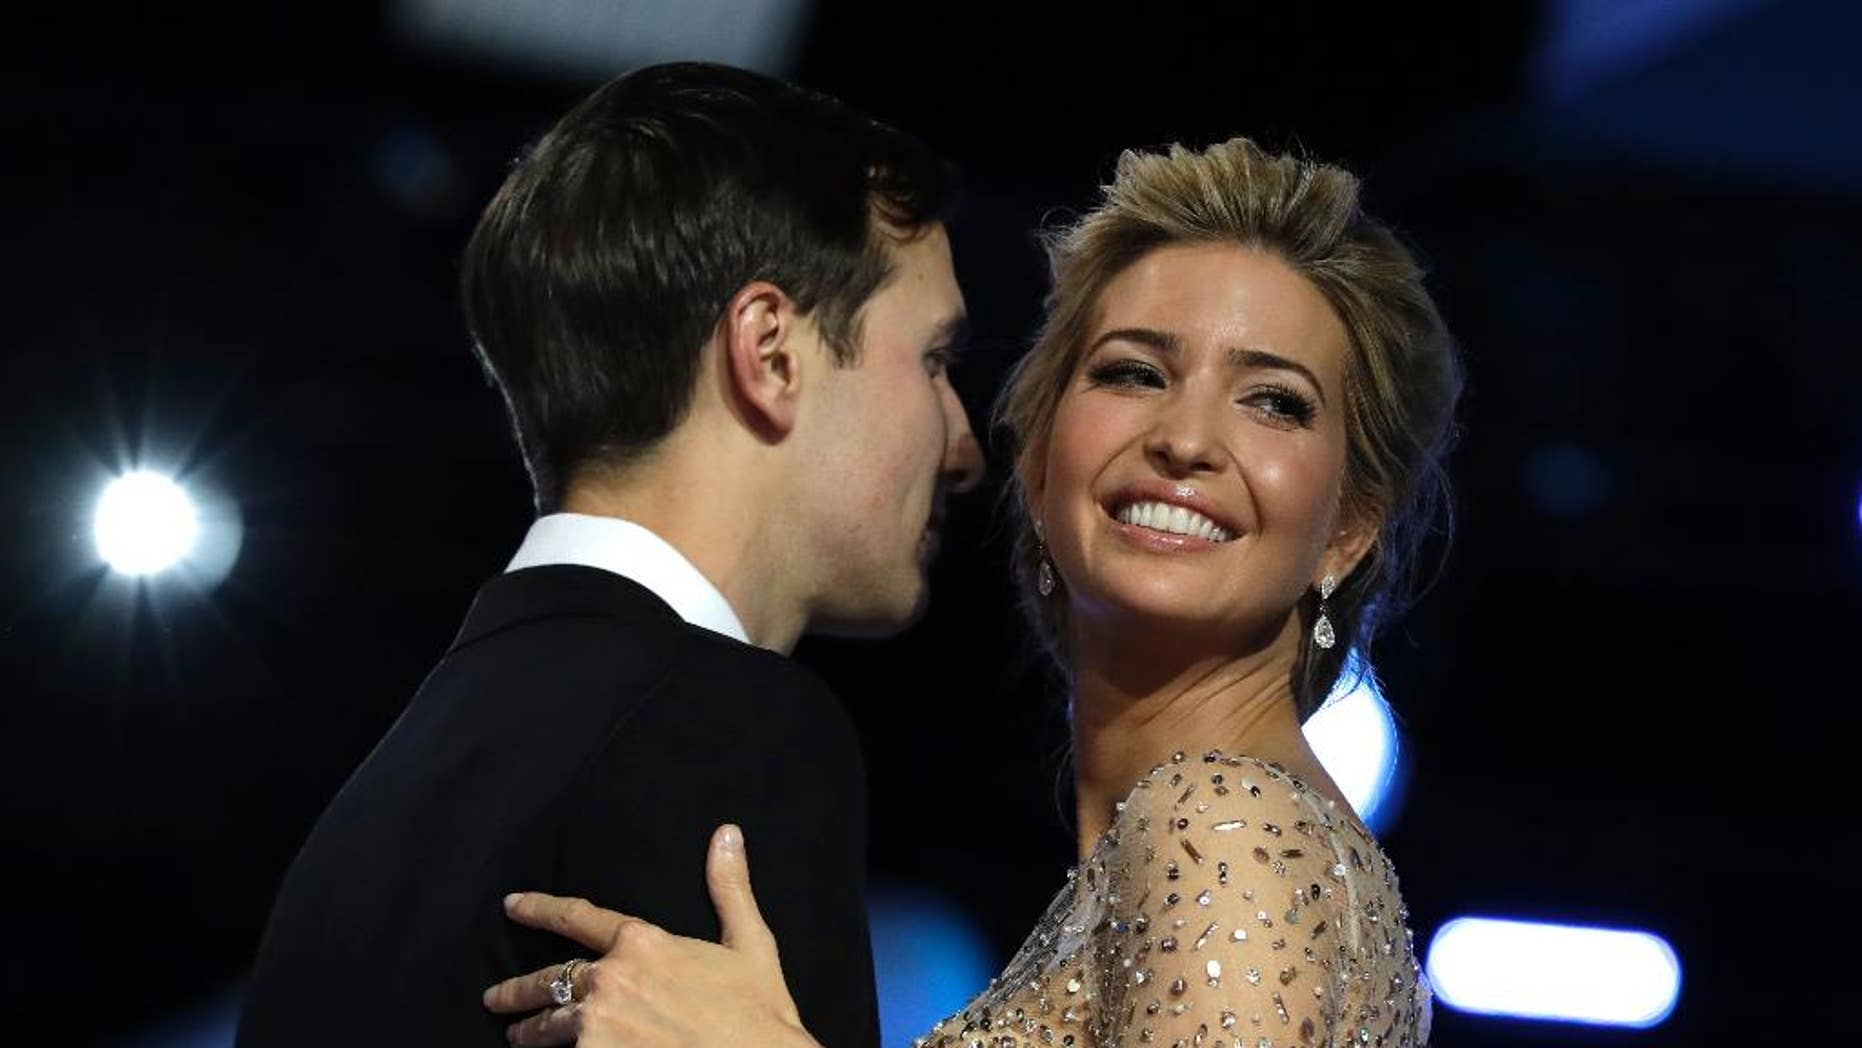 FILE -- In this Friday, Jan. 20, 2017 file photo, Ivanka Trump and her husband Jared Kushner dance at the Freedom Ball, in Washington. Is Ivanka Trump really Jewish? Last year, Israel's religious authorities issued a ruling that raised doubts about her conversion to Judaism. But now that her father is president, they have changed their tune, raising eyebrows among advocates who have long pushed the country's rabbinical establishment to be more tolerant toward converts. (AP Photo/Evan Vucci, File)